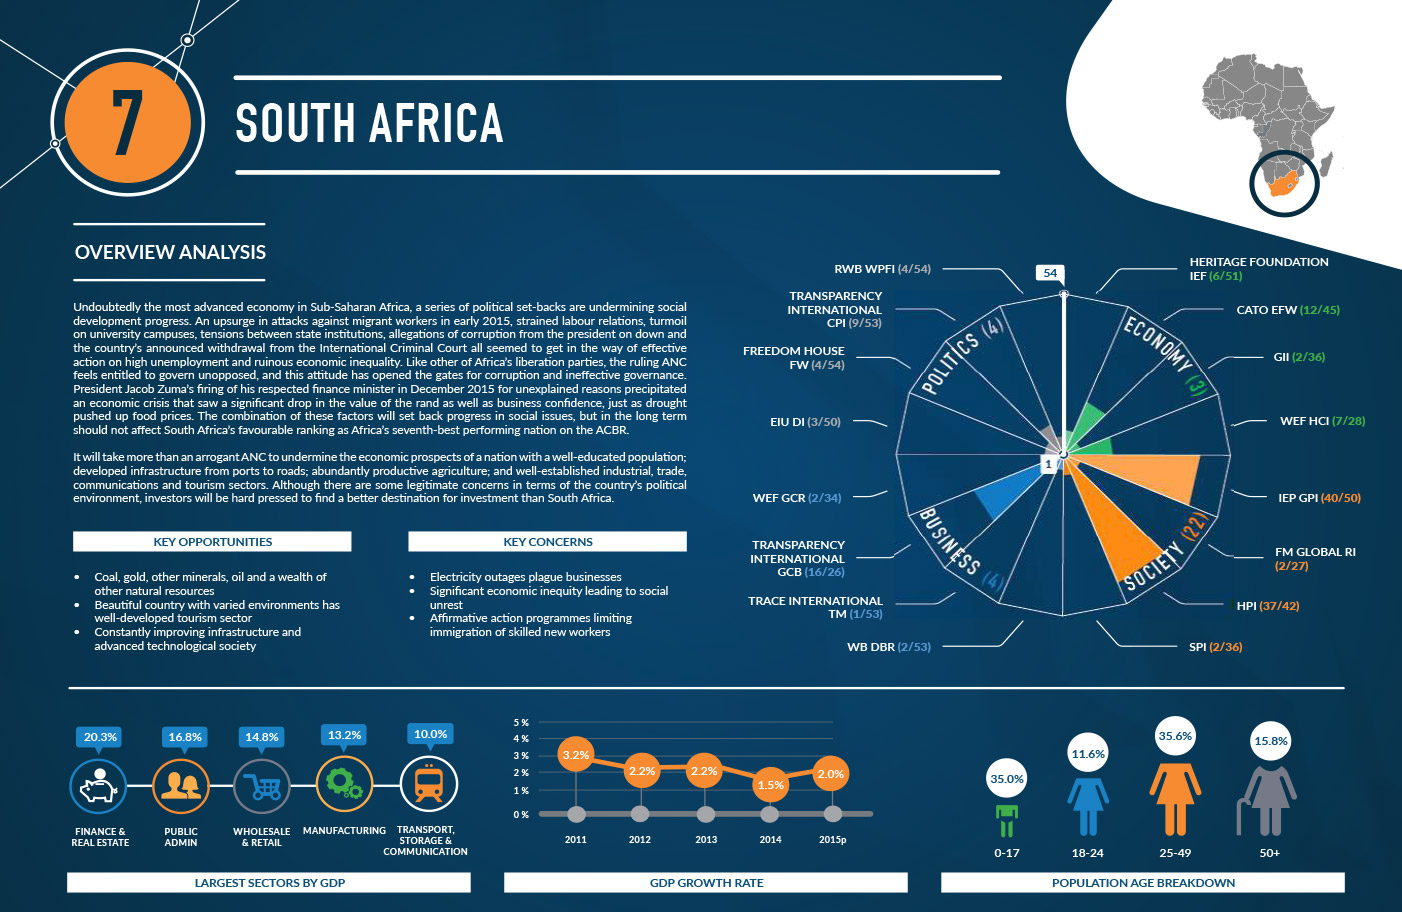 7-south-africa-1